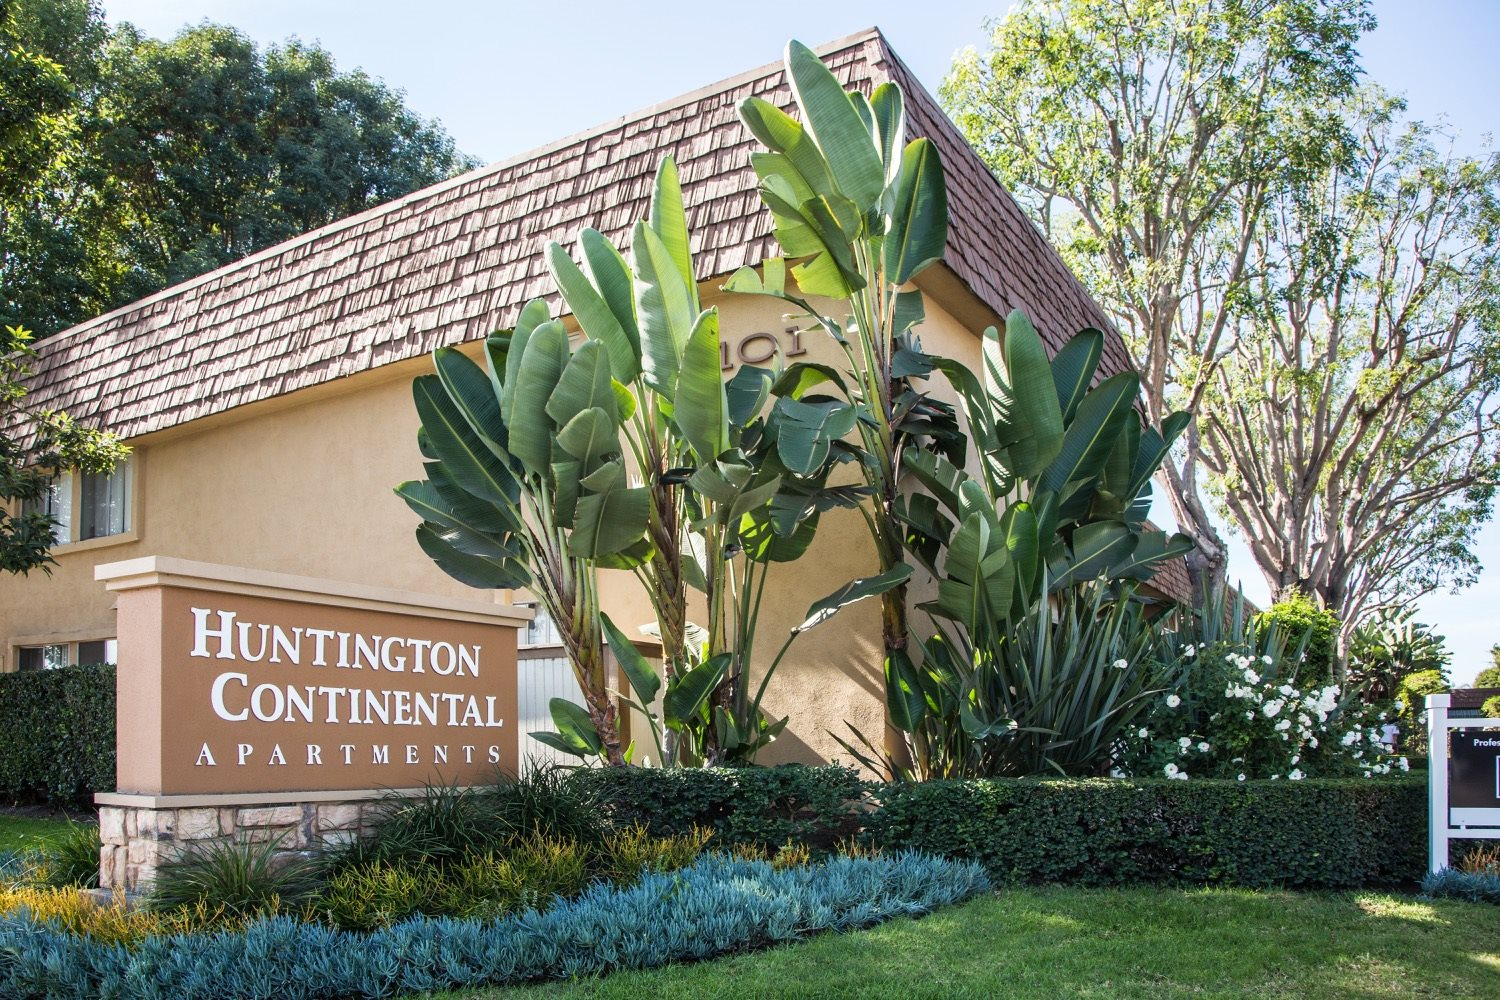 huntington-continental-apts